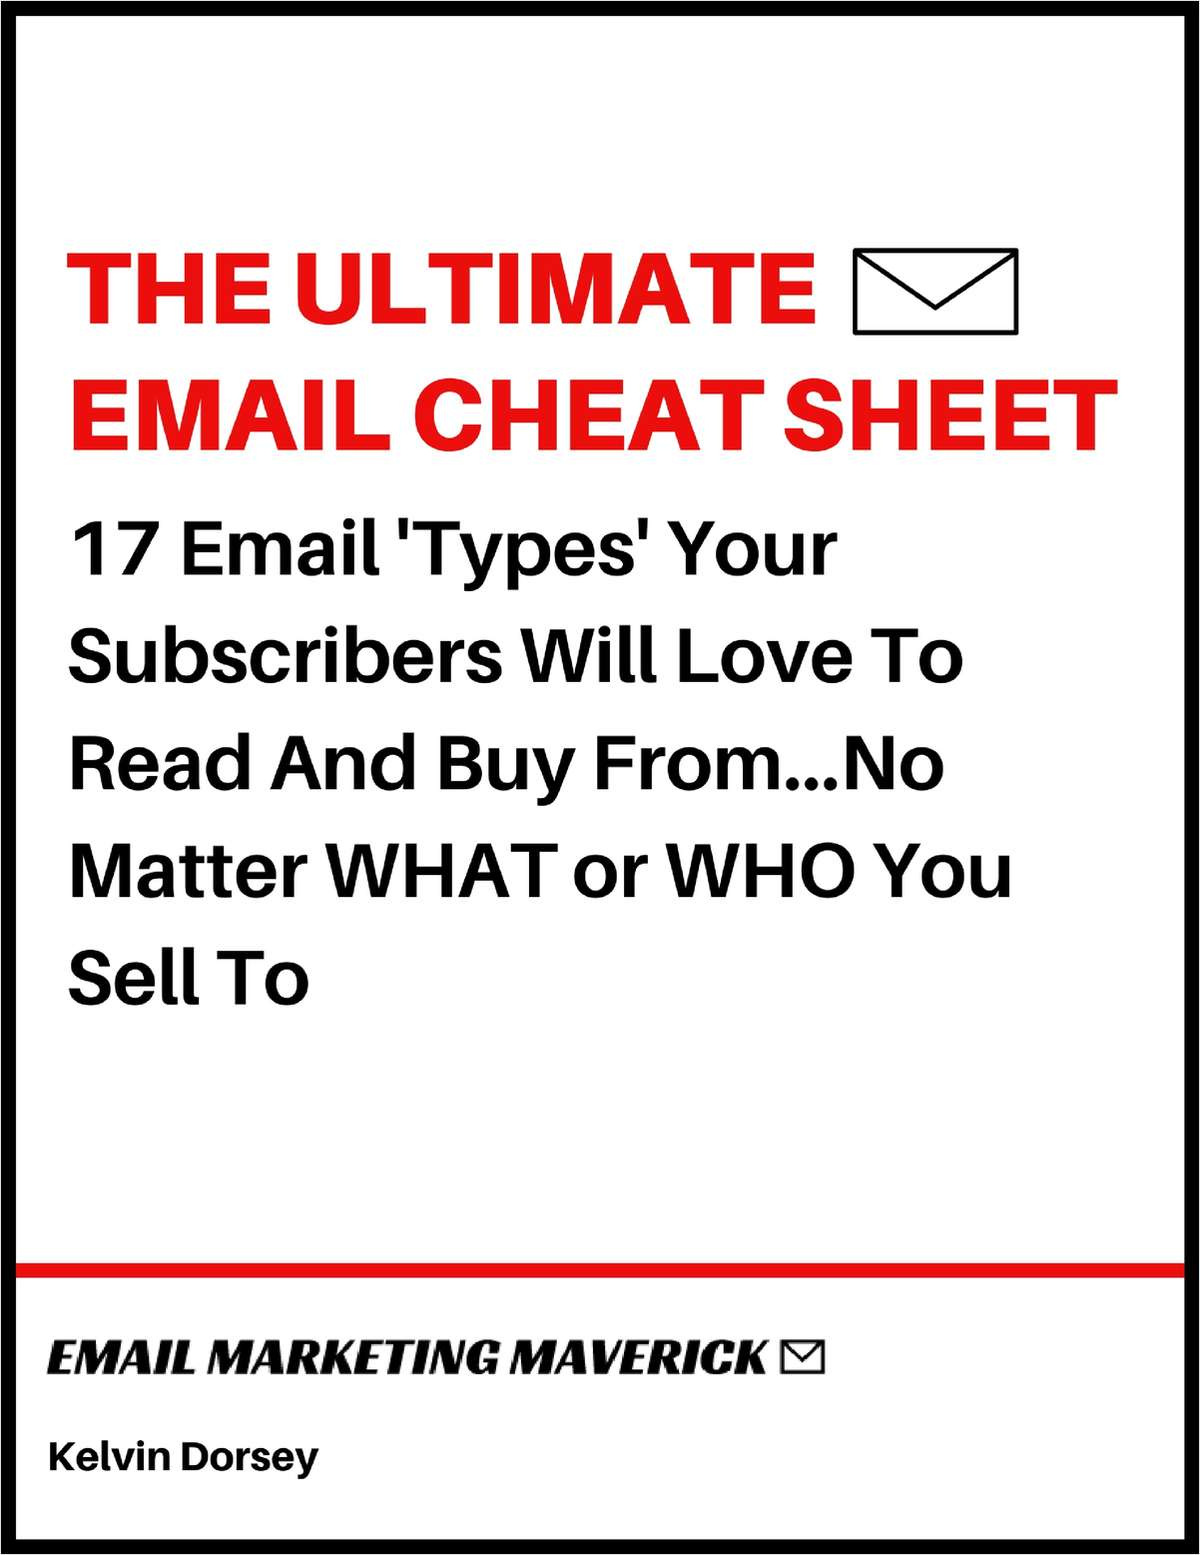 The Ultimate Email Cheat Sheet - 17 Email Types Your Subscribers Will Love To Read and Buy From...No Matter WHAT or WHO You Sell To